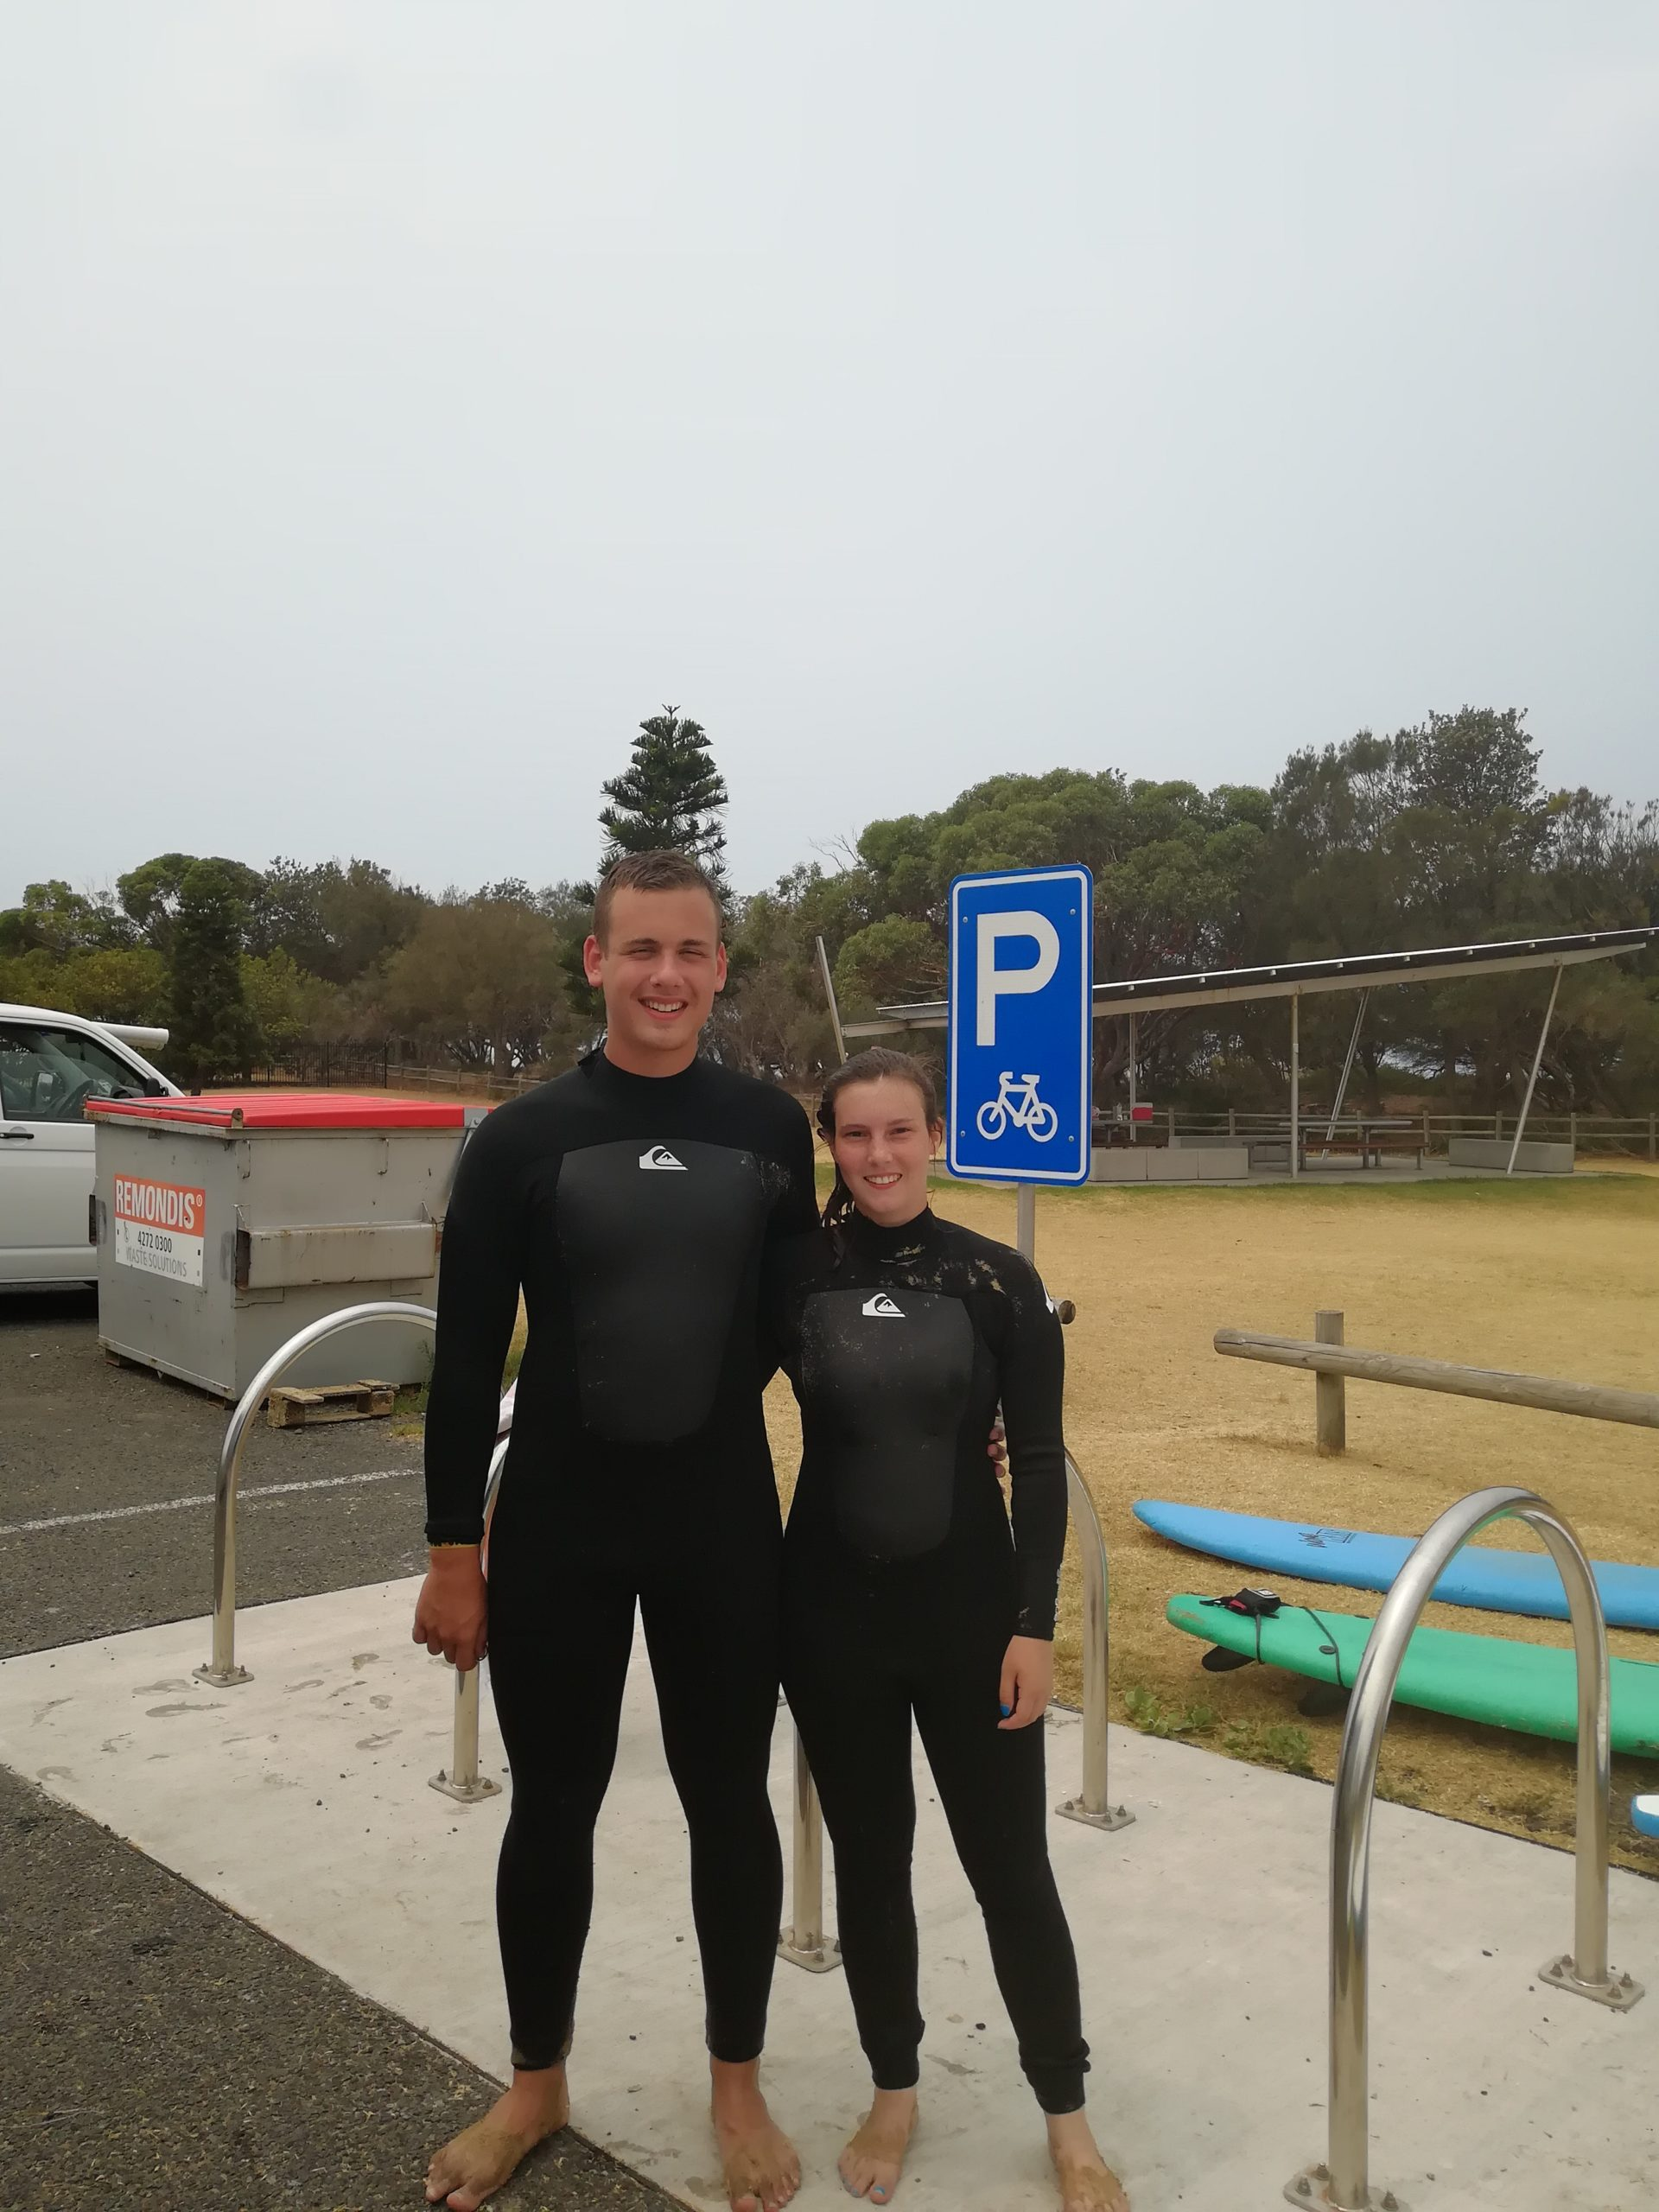 Wir in Neoprenanzügen (Surfkurs in Sydney)